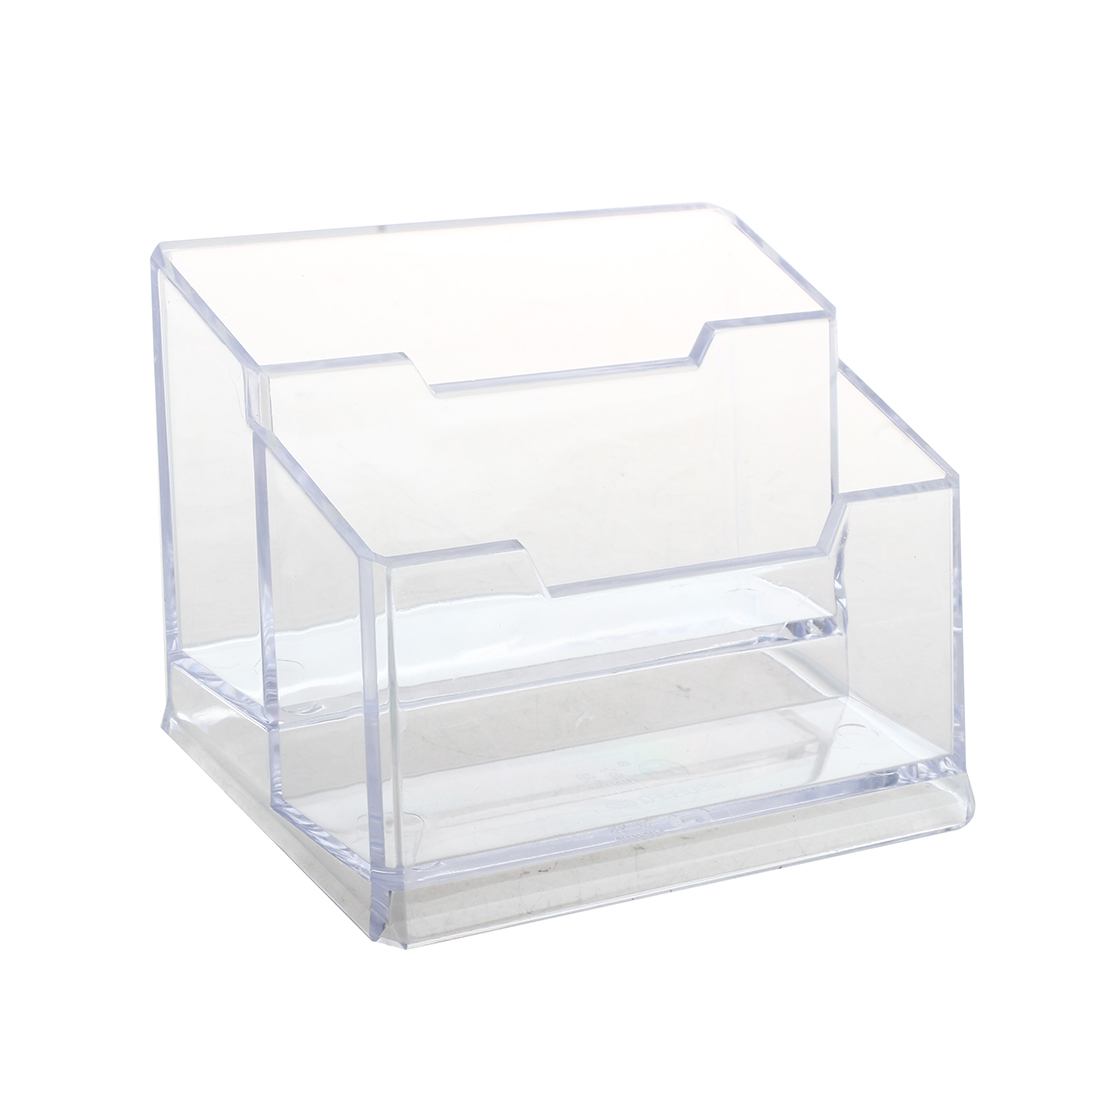 Transparent Plastic Bussiness Card 2-Tier Stand Holder